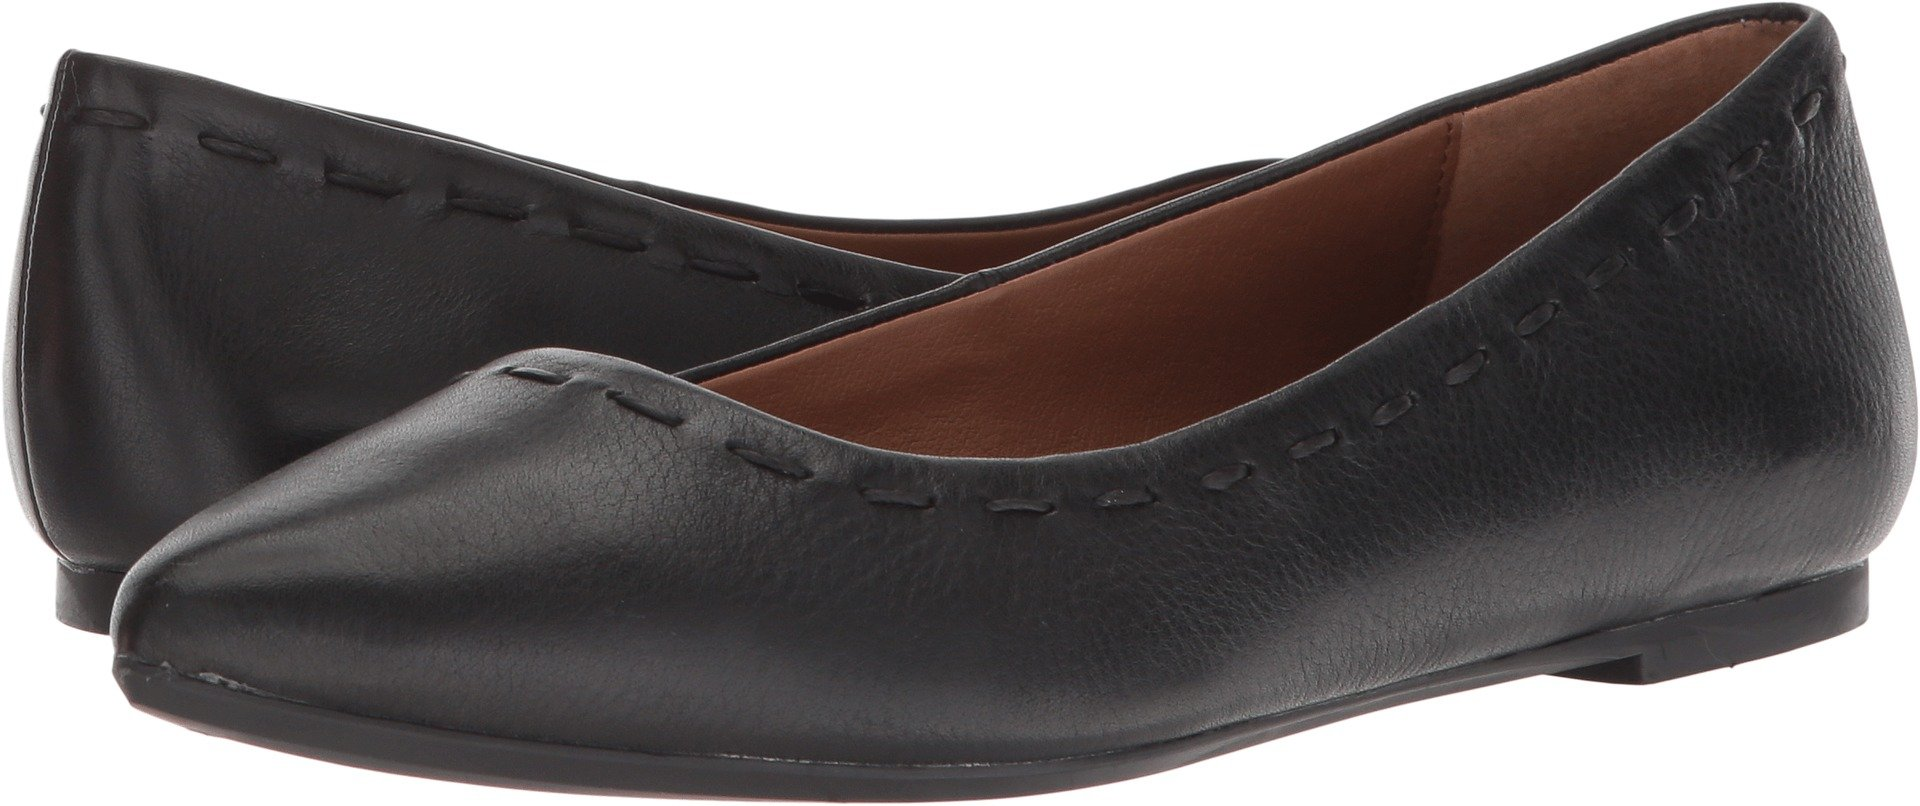 FRYE Women's Kiki Stitch Ballet Black Cow Napoli 7.5 B US